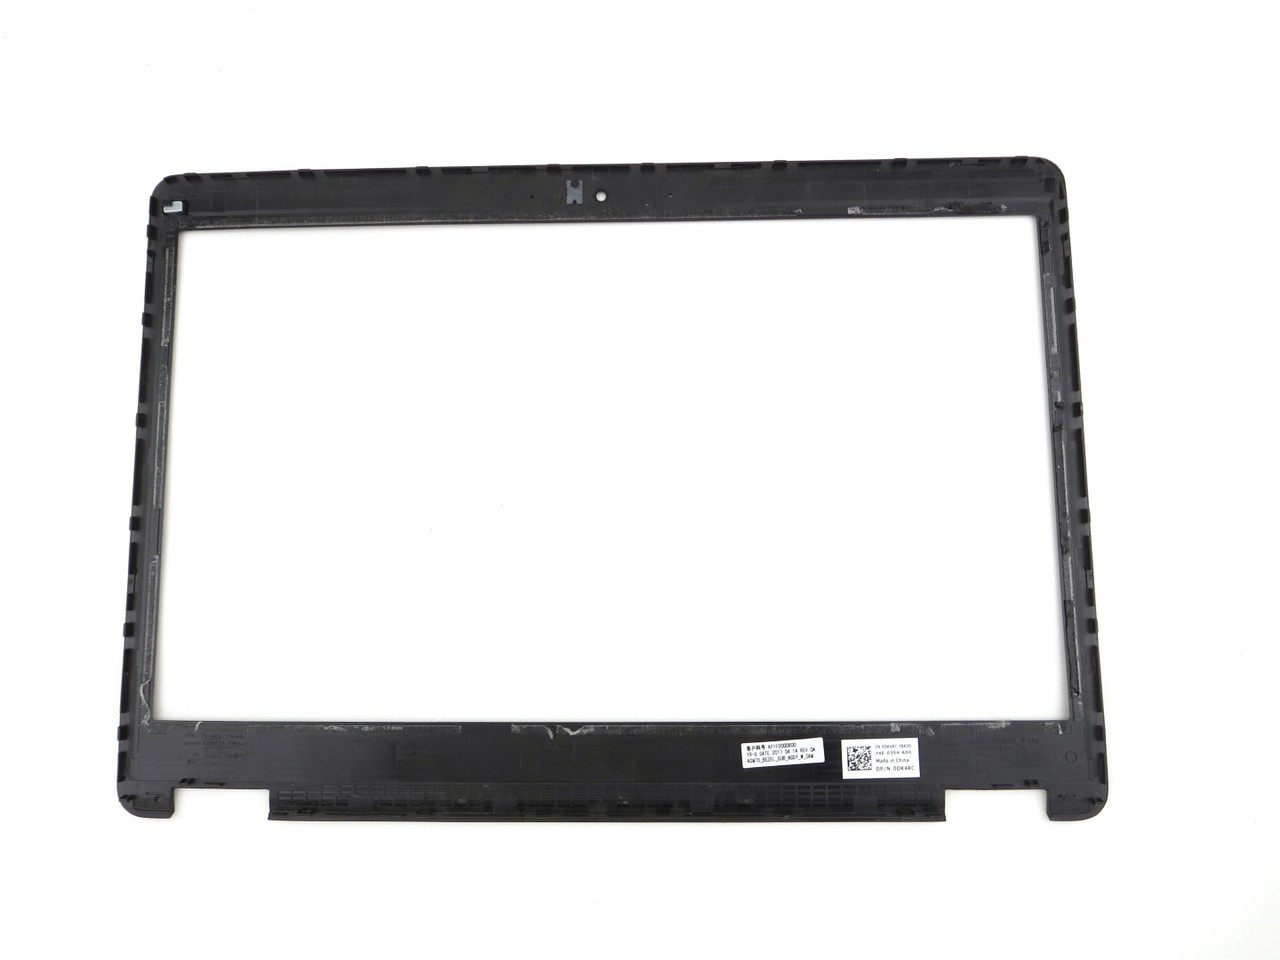 "Dell Latitude E5470 14"" LCD Front Trim Cover Bezel Plastic - With Camera Port - Non Touchscreen - DK4RC 0DK4RC"